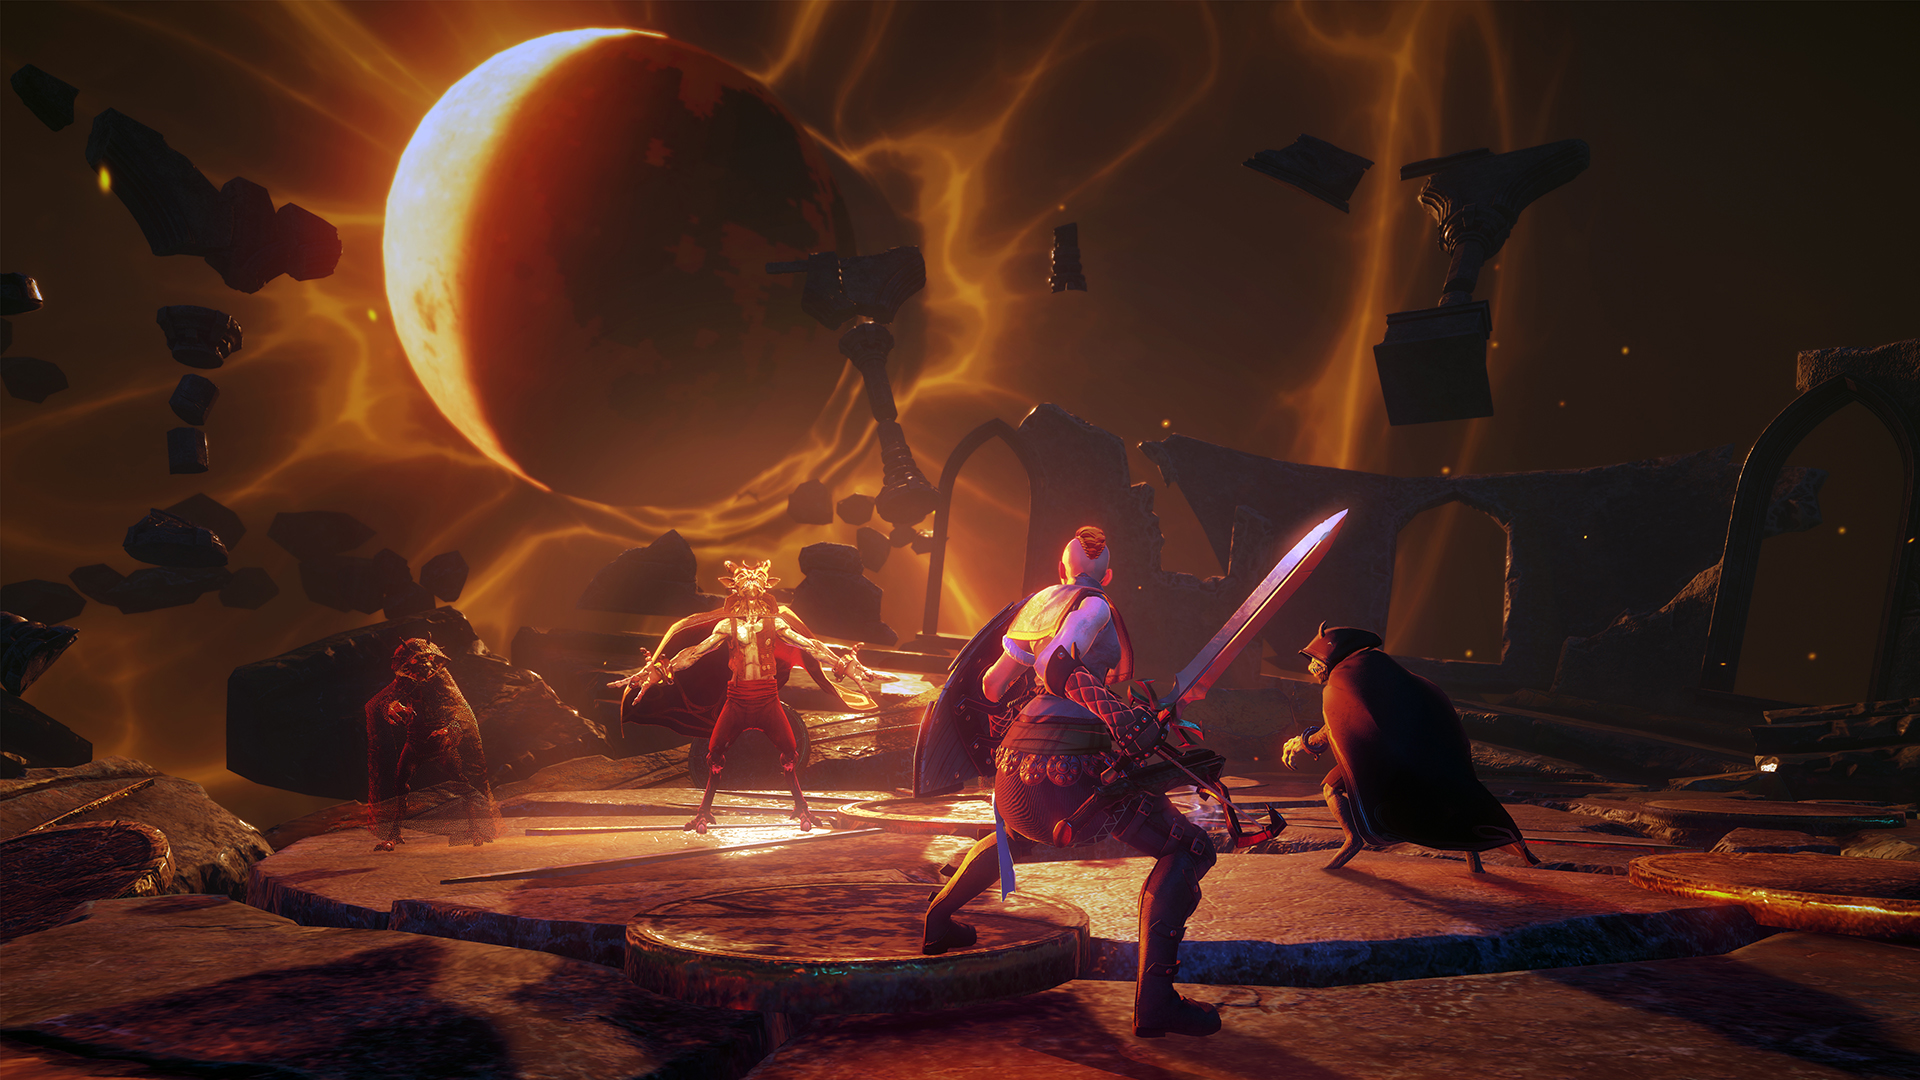 hand of fate 2, The Servant and The Beast DLC, xbox one, ps4, sony, pc gaming, xbox, stride pr, video game pr, indie developers, indie gaming, indie pr, videogame, deck, defiant development